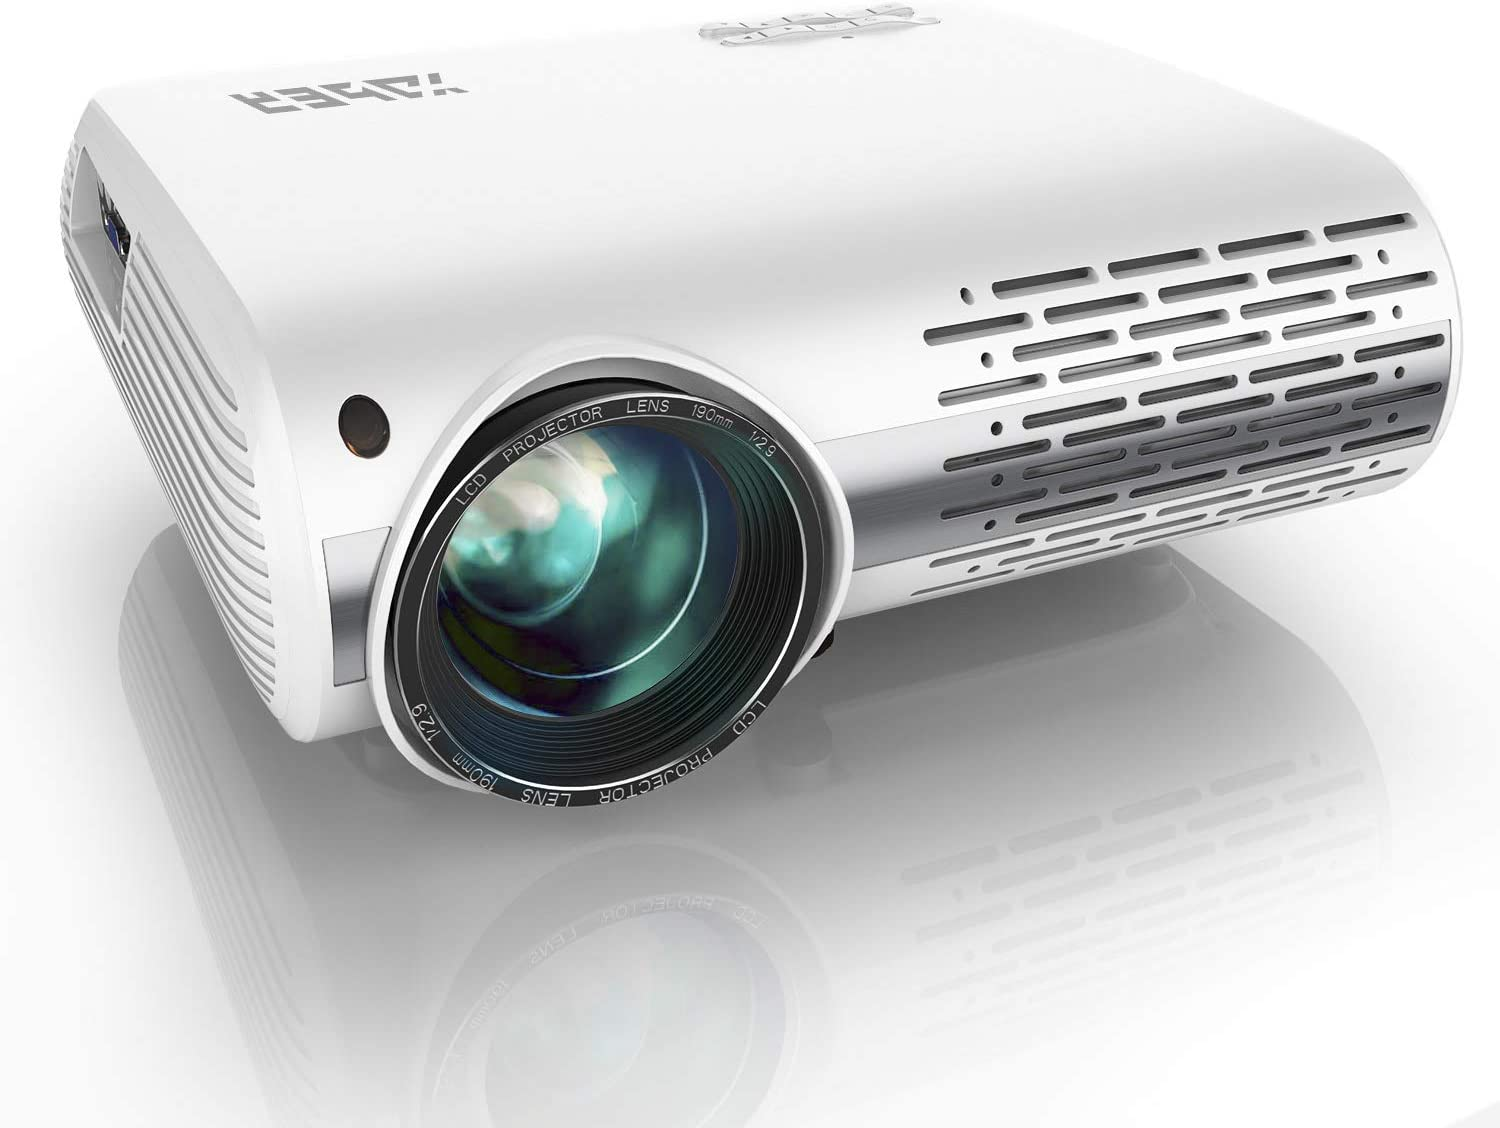 YABER Native 1080P 6500 Lumens Projector - affordable projector for day light viewing